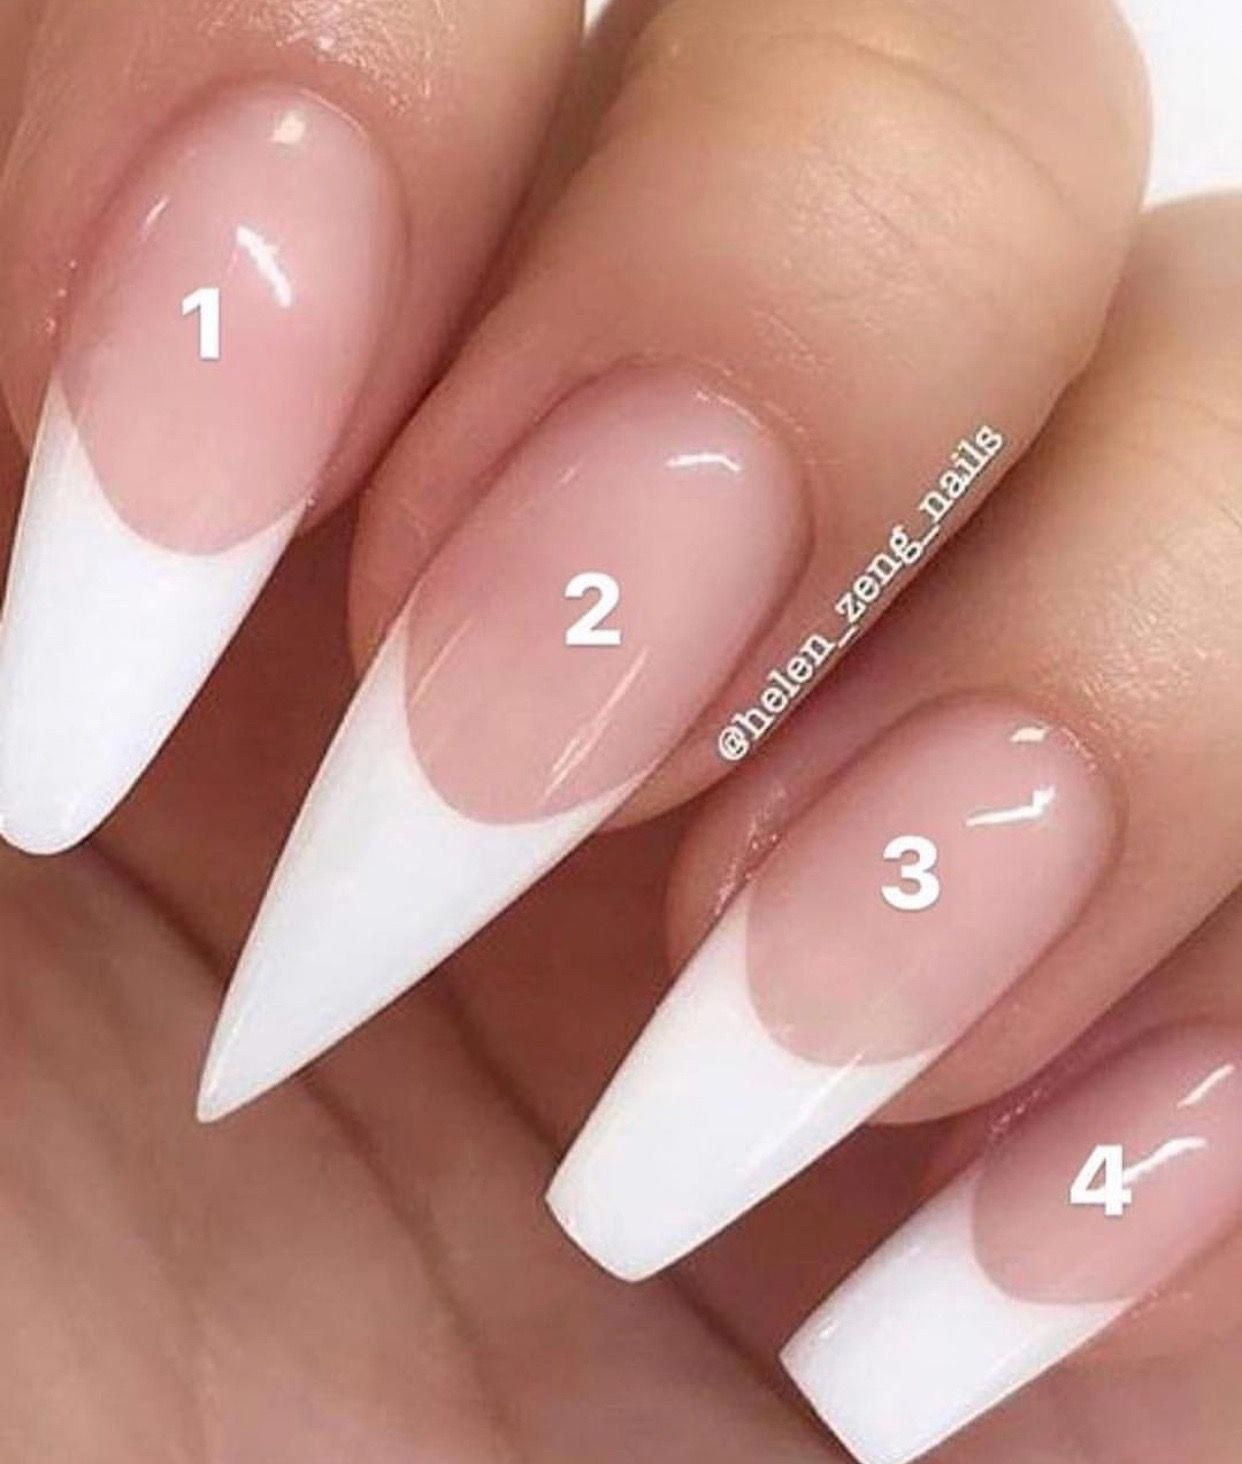 Acrylic Nail Styles Different Types Of Acrylic Nails Coffin Square Stiletto Rounded Nails Acrylic Nail Types White Tip Acrylic Nails Acrylic Nail Shapes